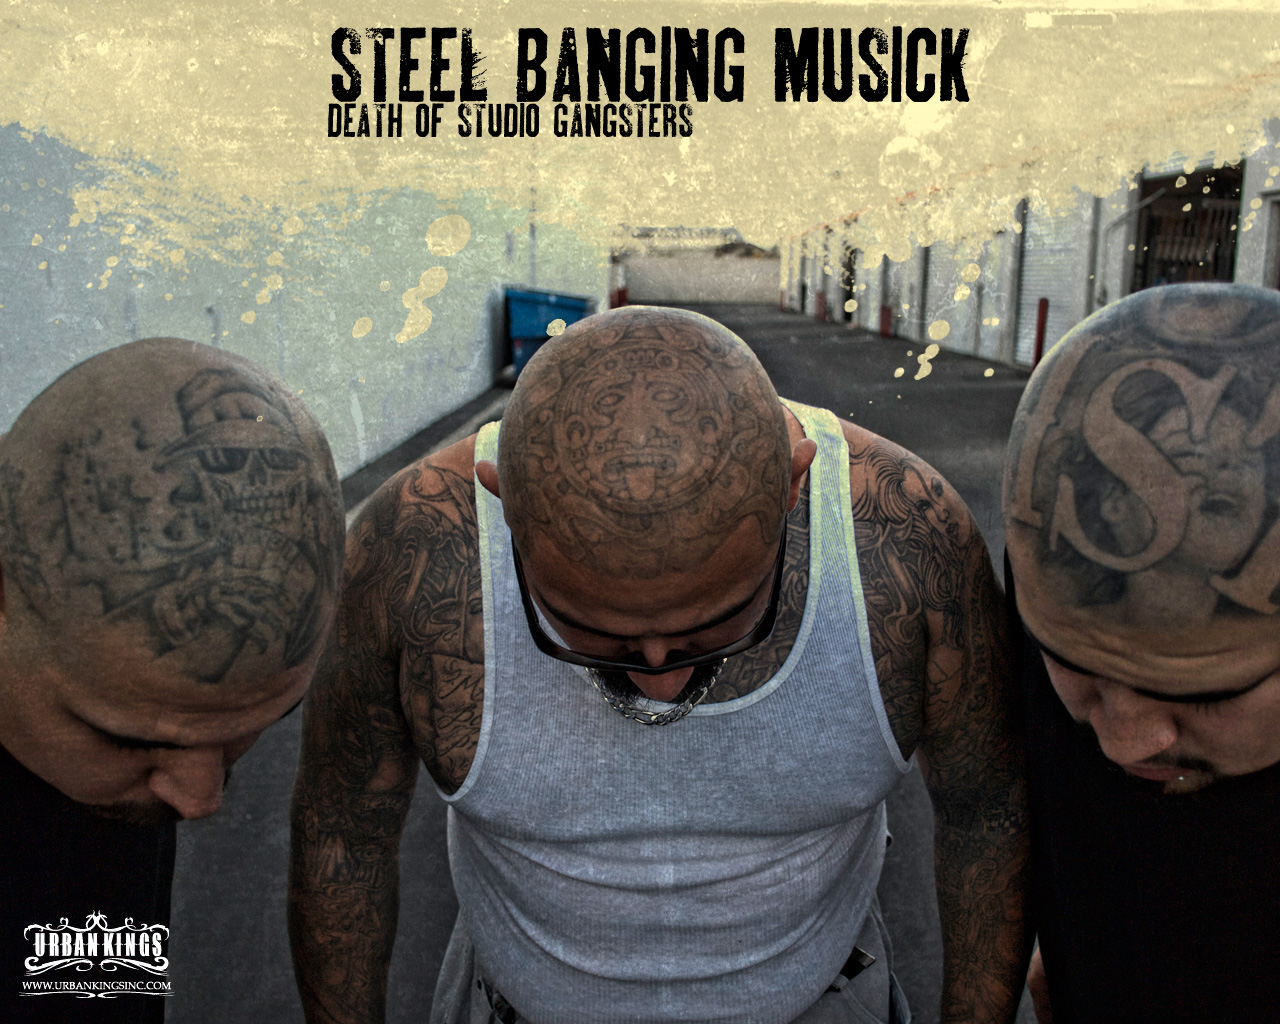 Tags: chicano rap wallpapers, midget loco, Steel Banging Musick, wallpapers